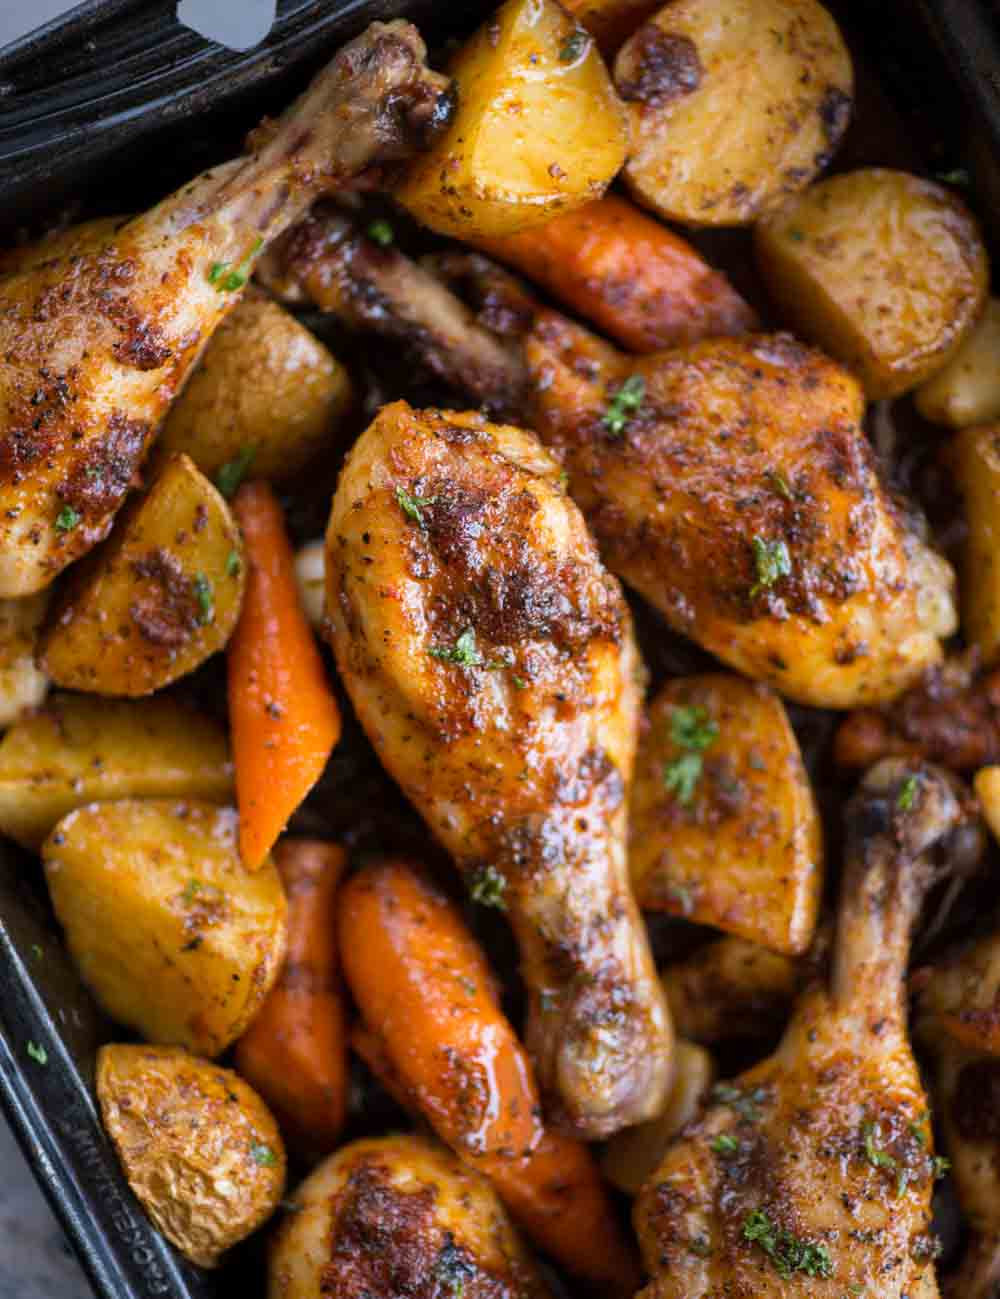 This baked Chicken legs with vegetable is a delicious one-pan dinner with minimal effort. Chicken and vegetables tossed in a ranch marinade and cooked until tender and juicy.